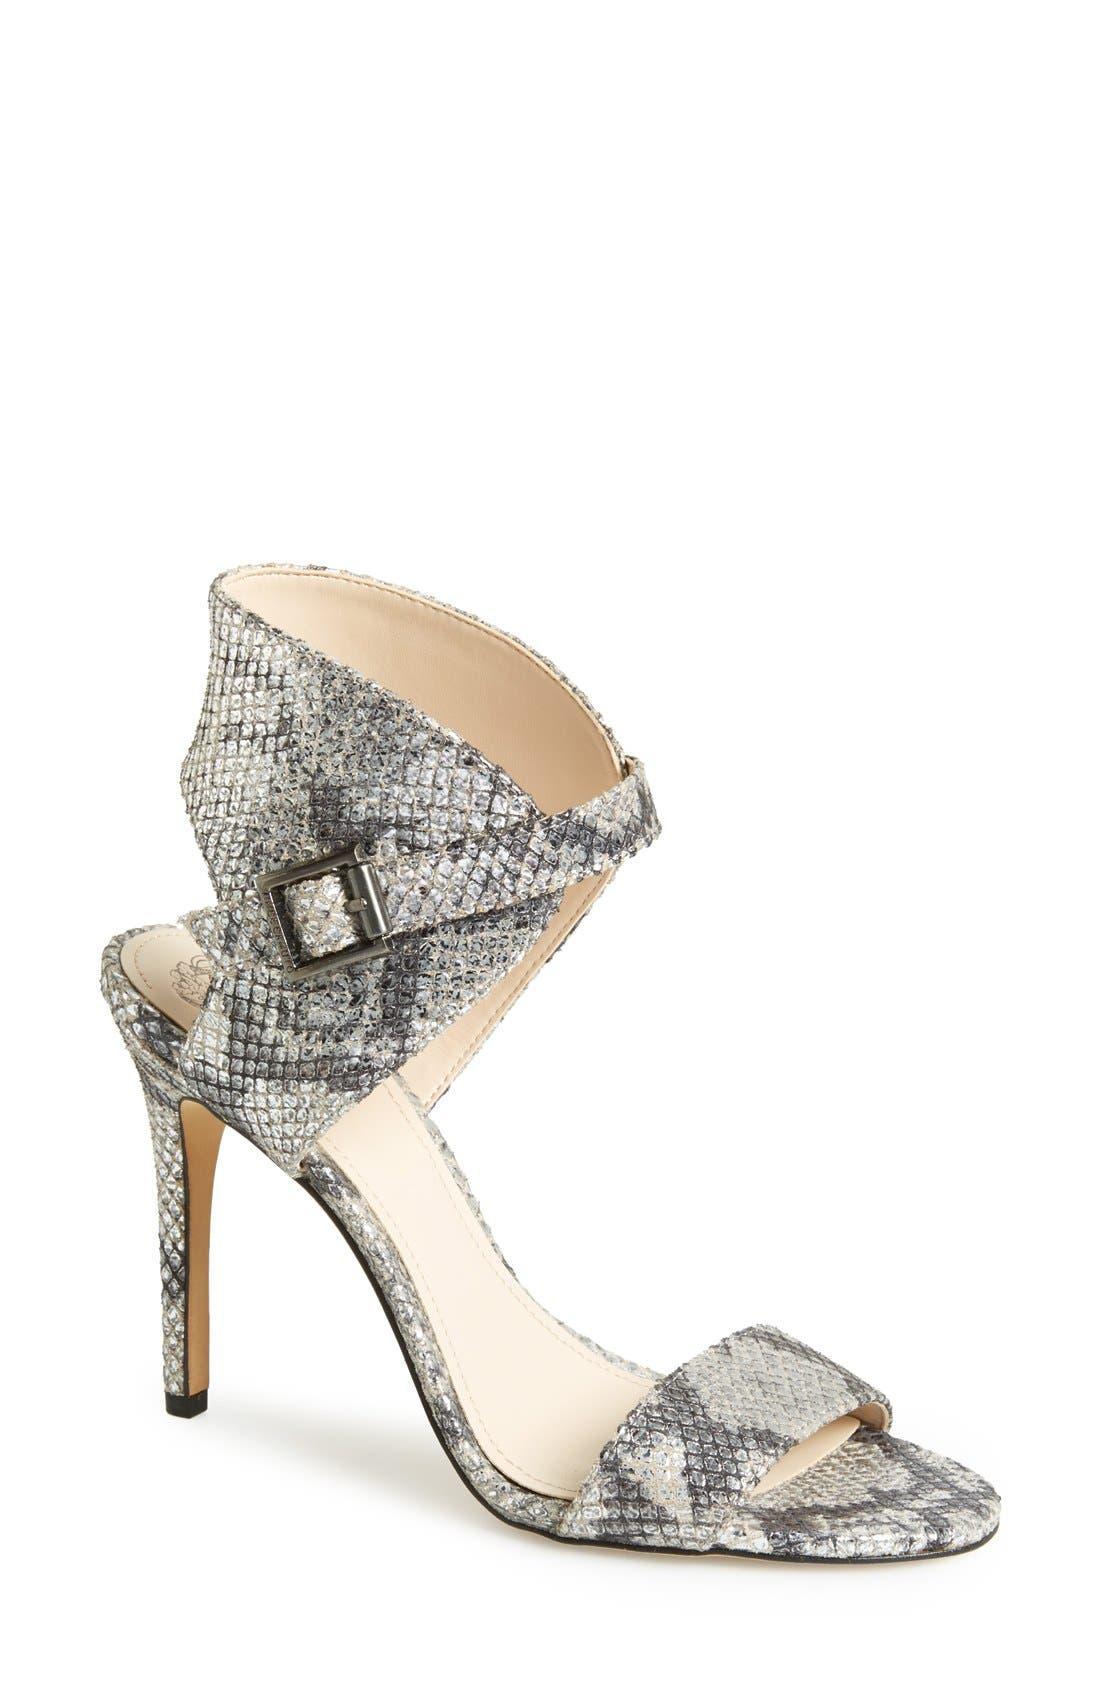 Main Image - Vince Camuto 'Tarma' Ankle Cuff Sandal (Women)